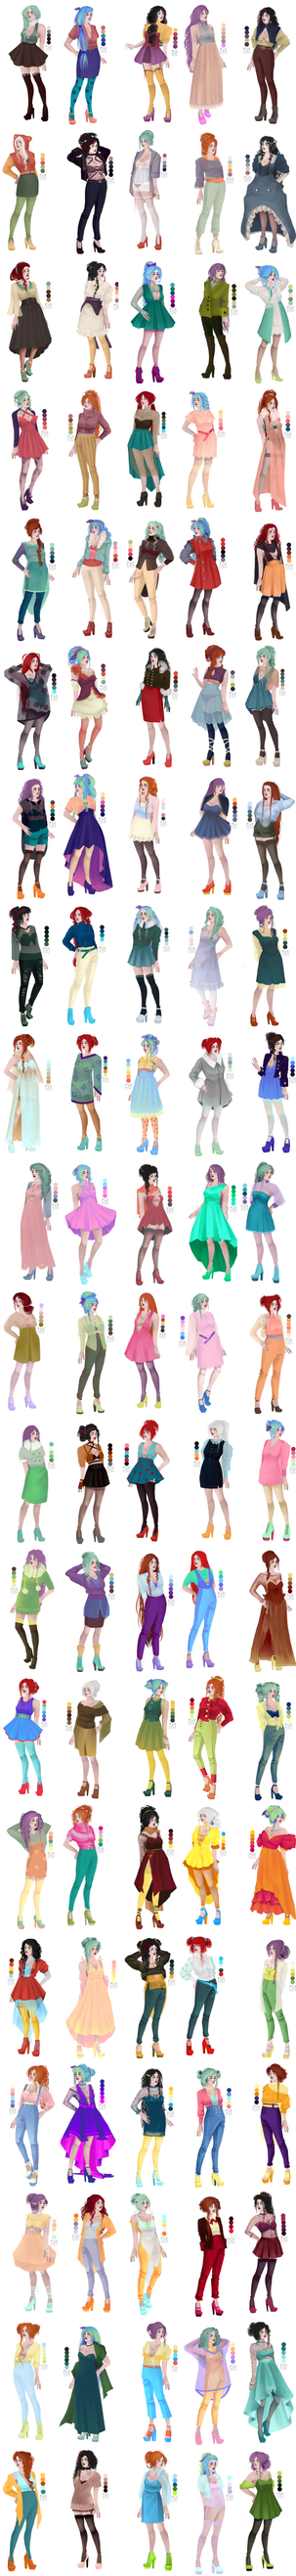 100 palette challenge - outfits by SeikoVanM